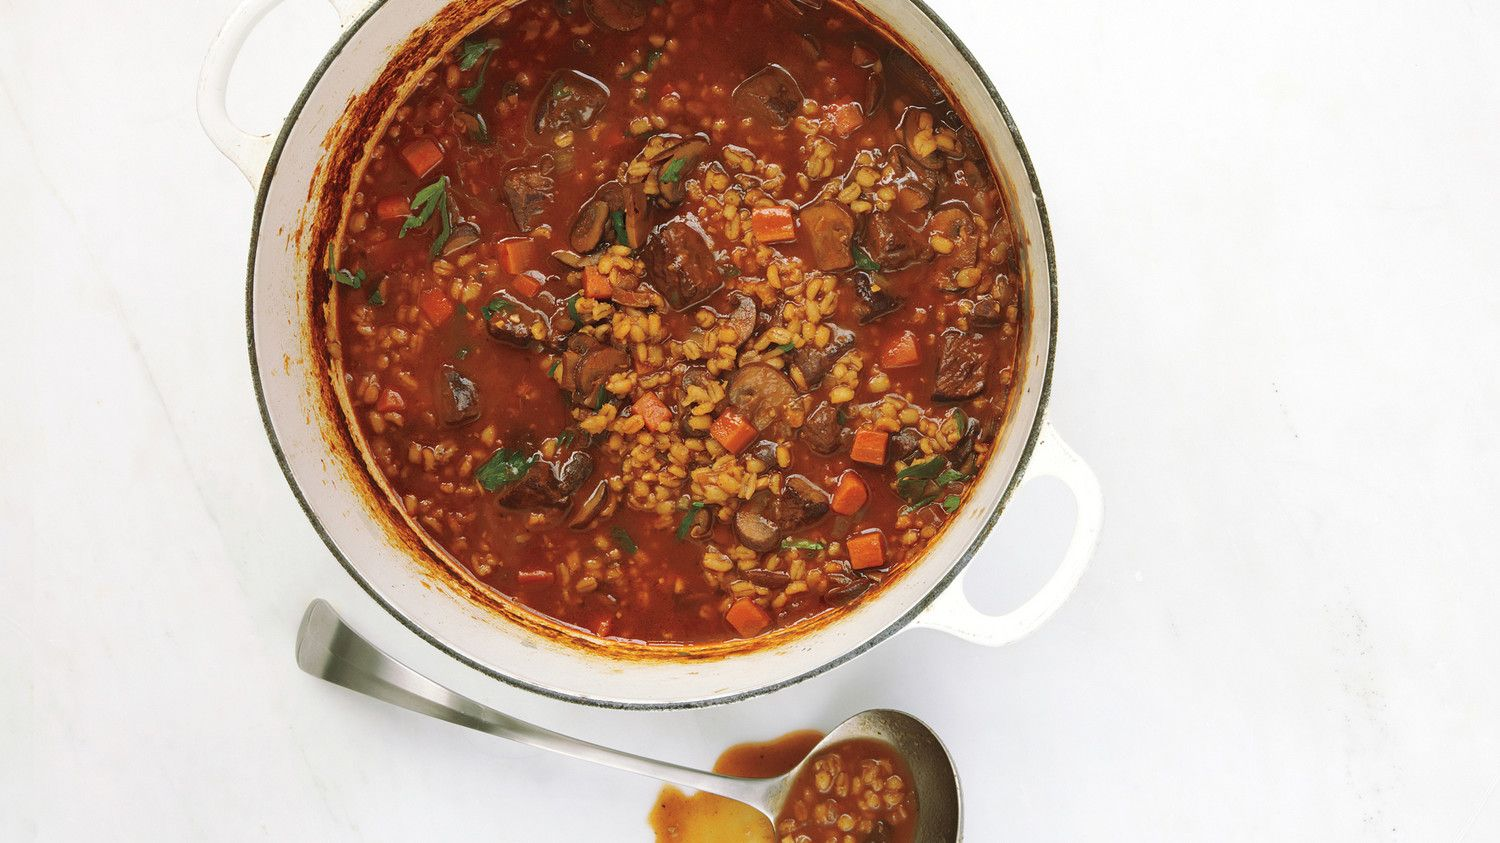 Beef and barley soup recipe meal train recipes beef